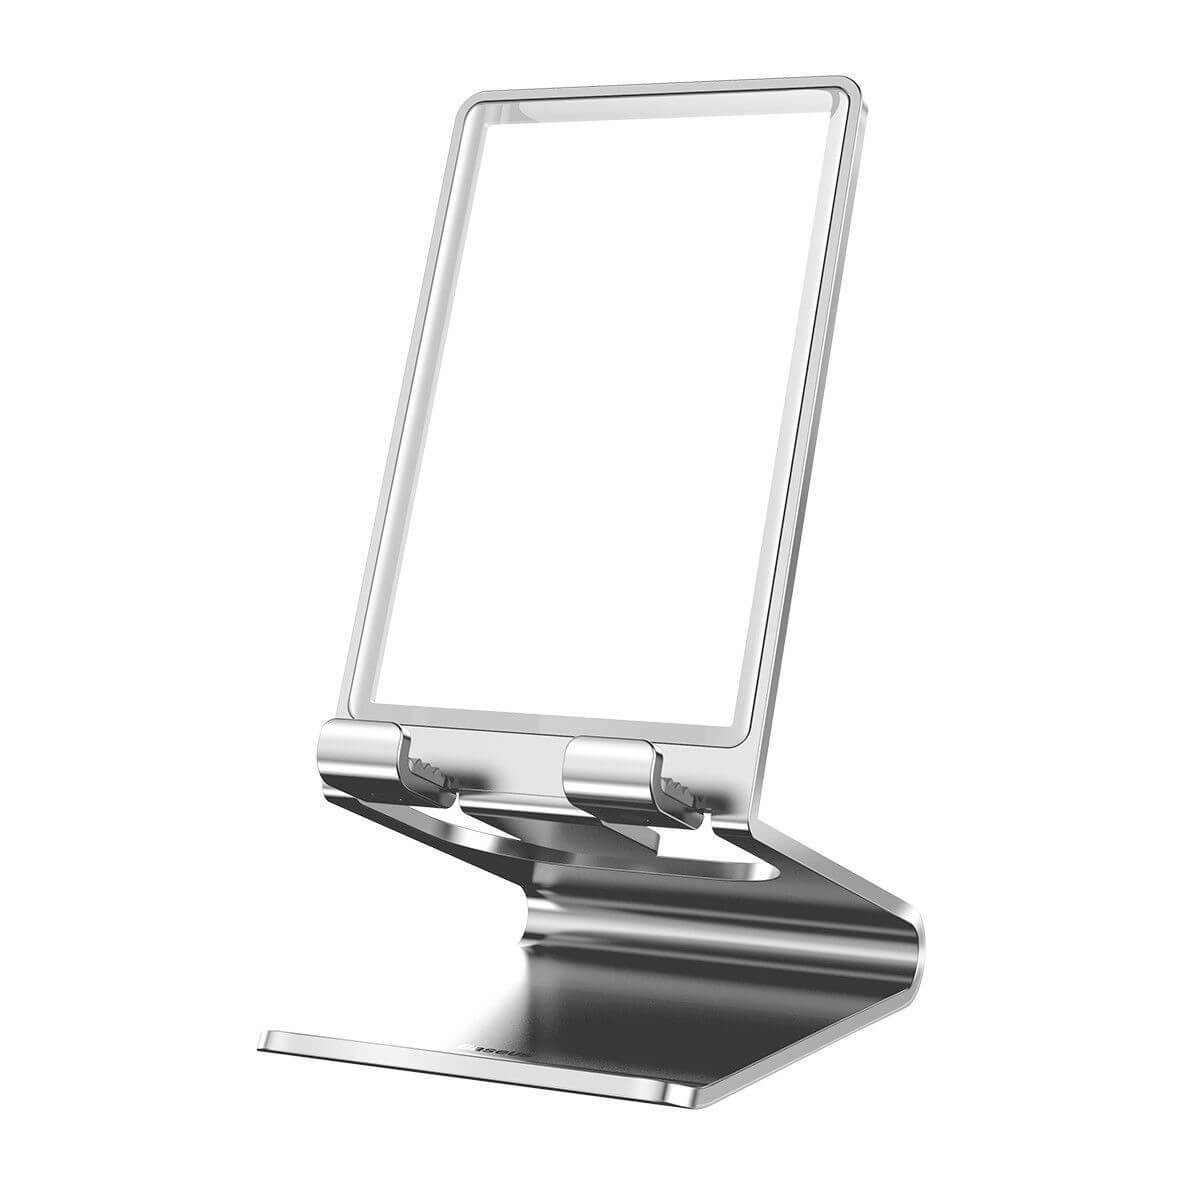 Baseus Suspension Glass Desktop Bracket (silver)